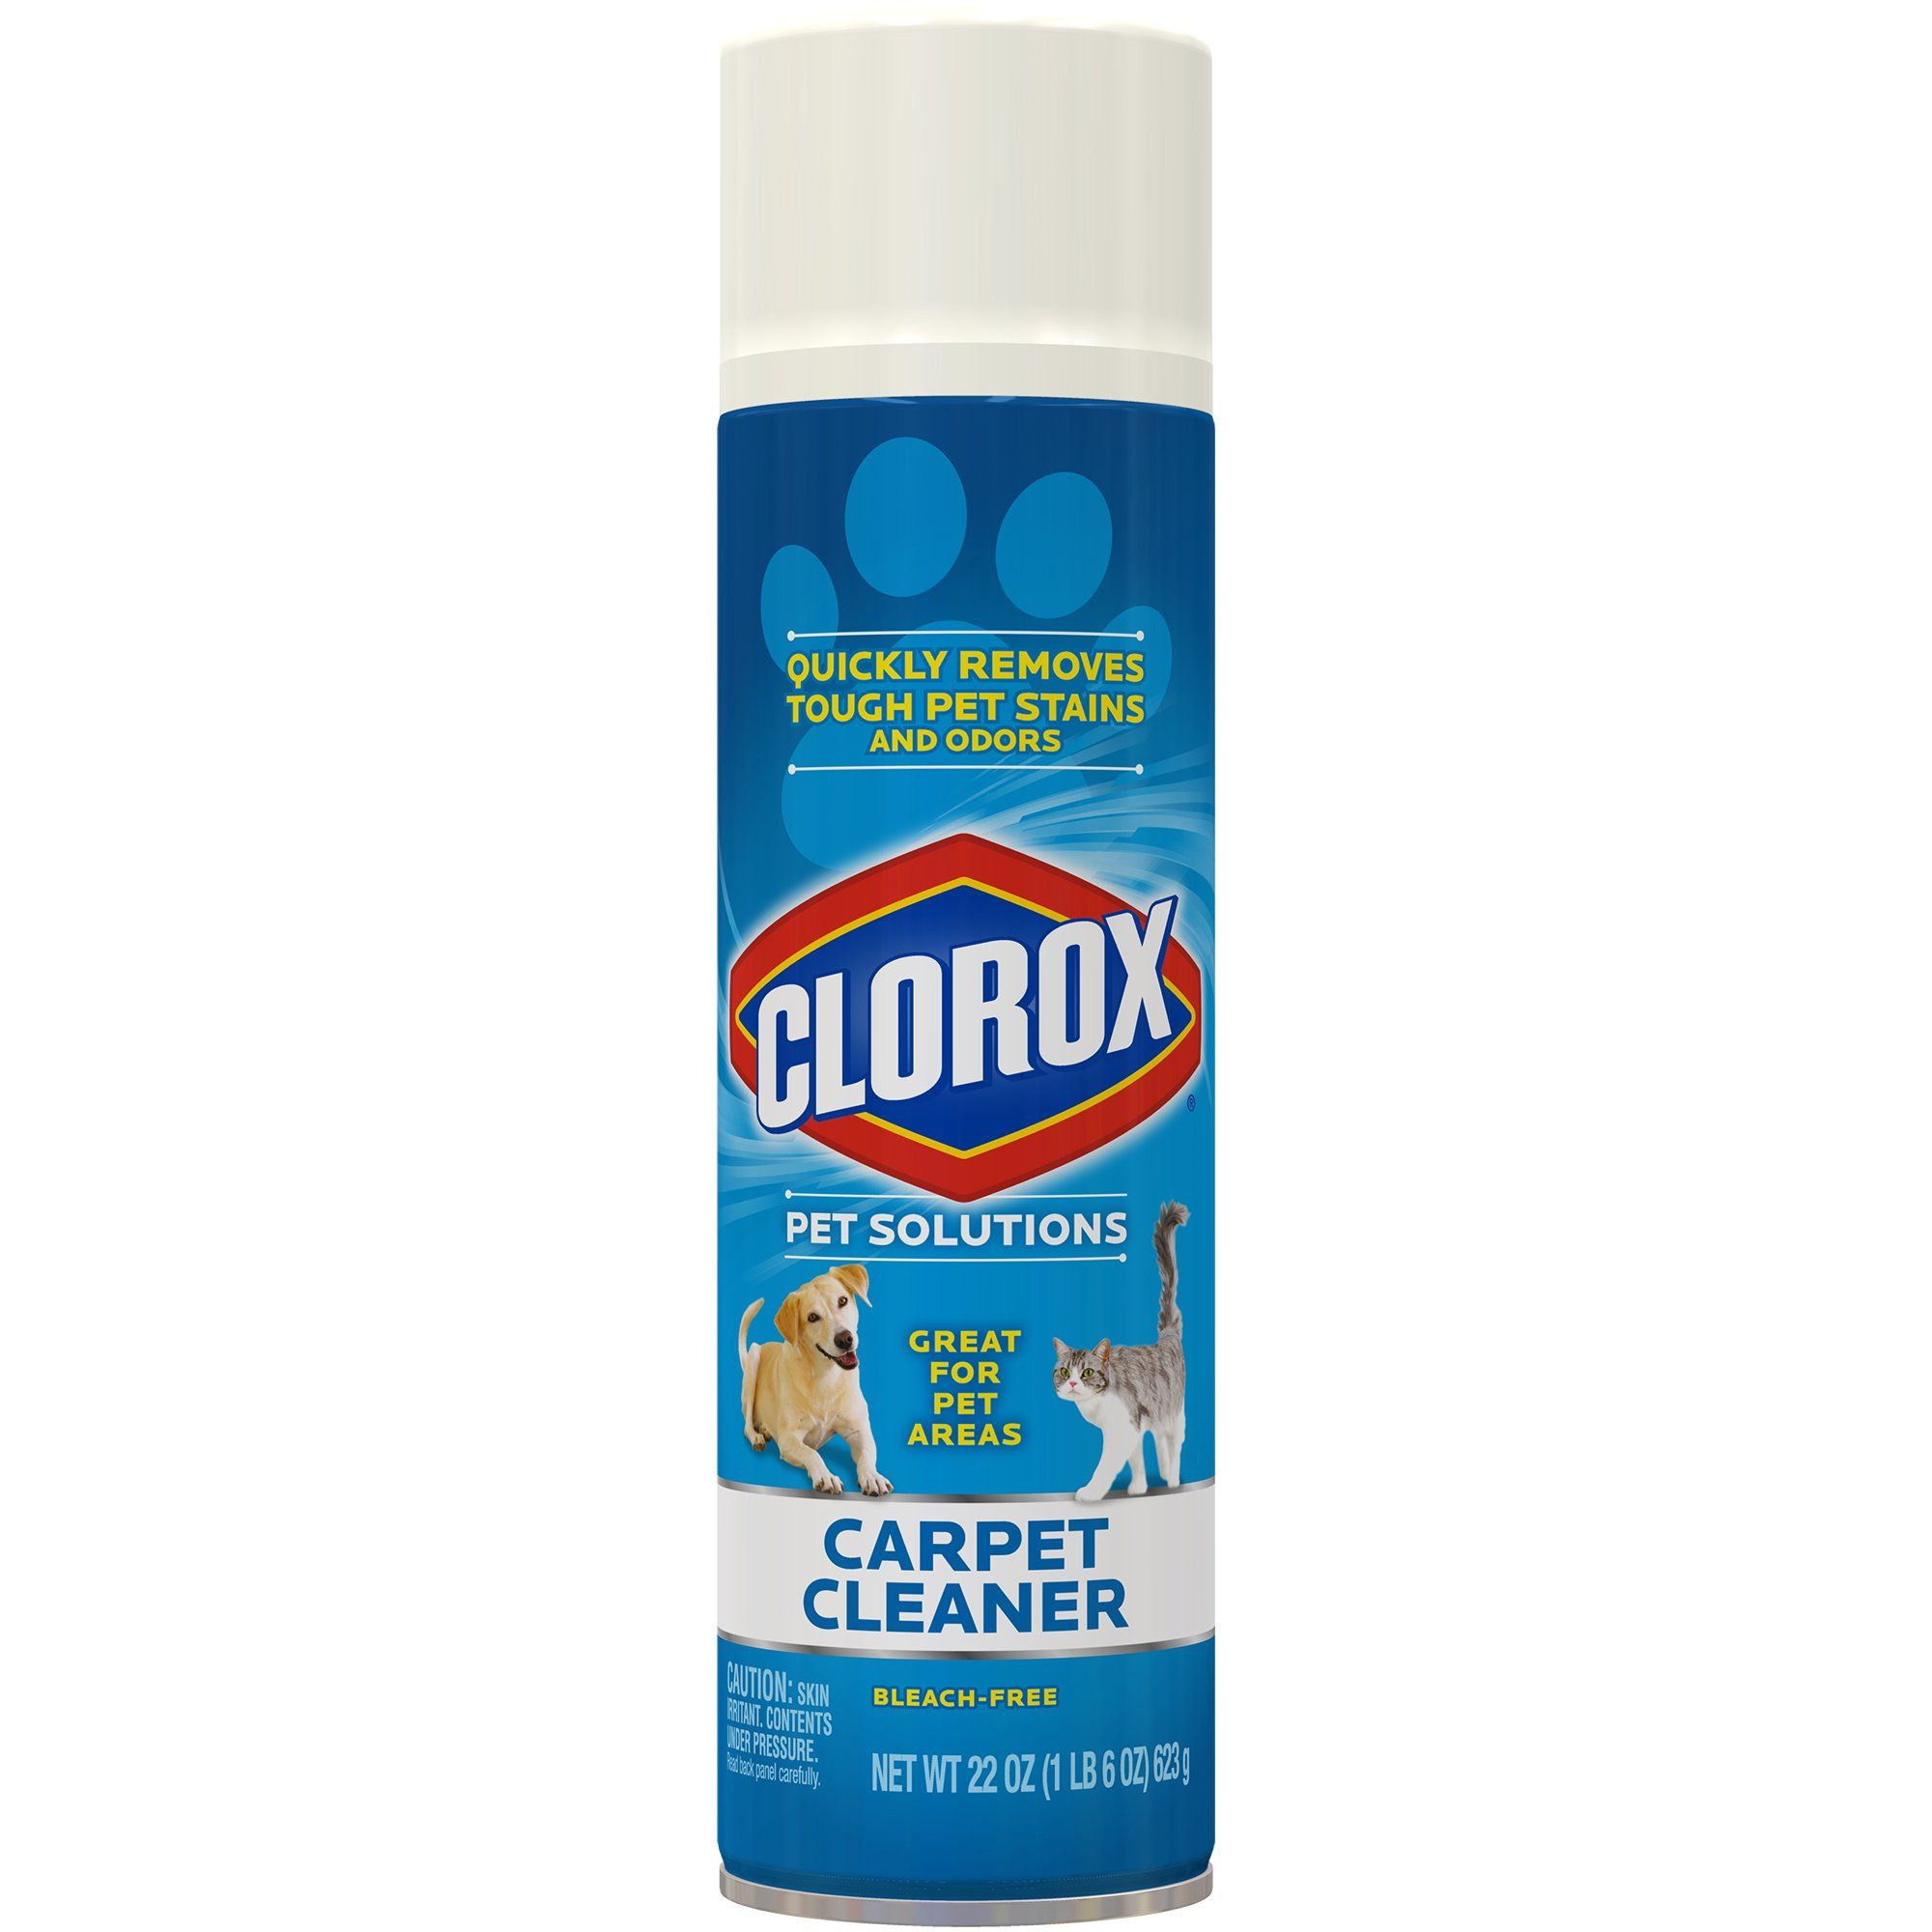 Sofa Foam Cleaner Best For Large Areas Clorox Pet Solutions Carpet Cleaner